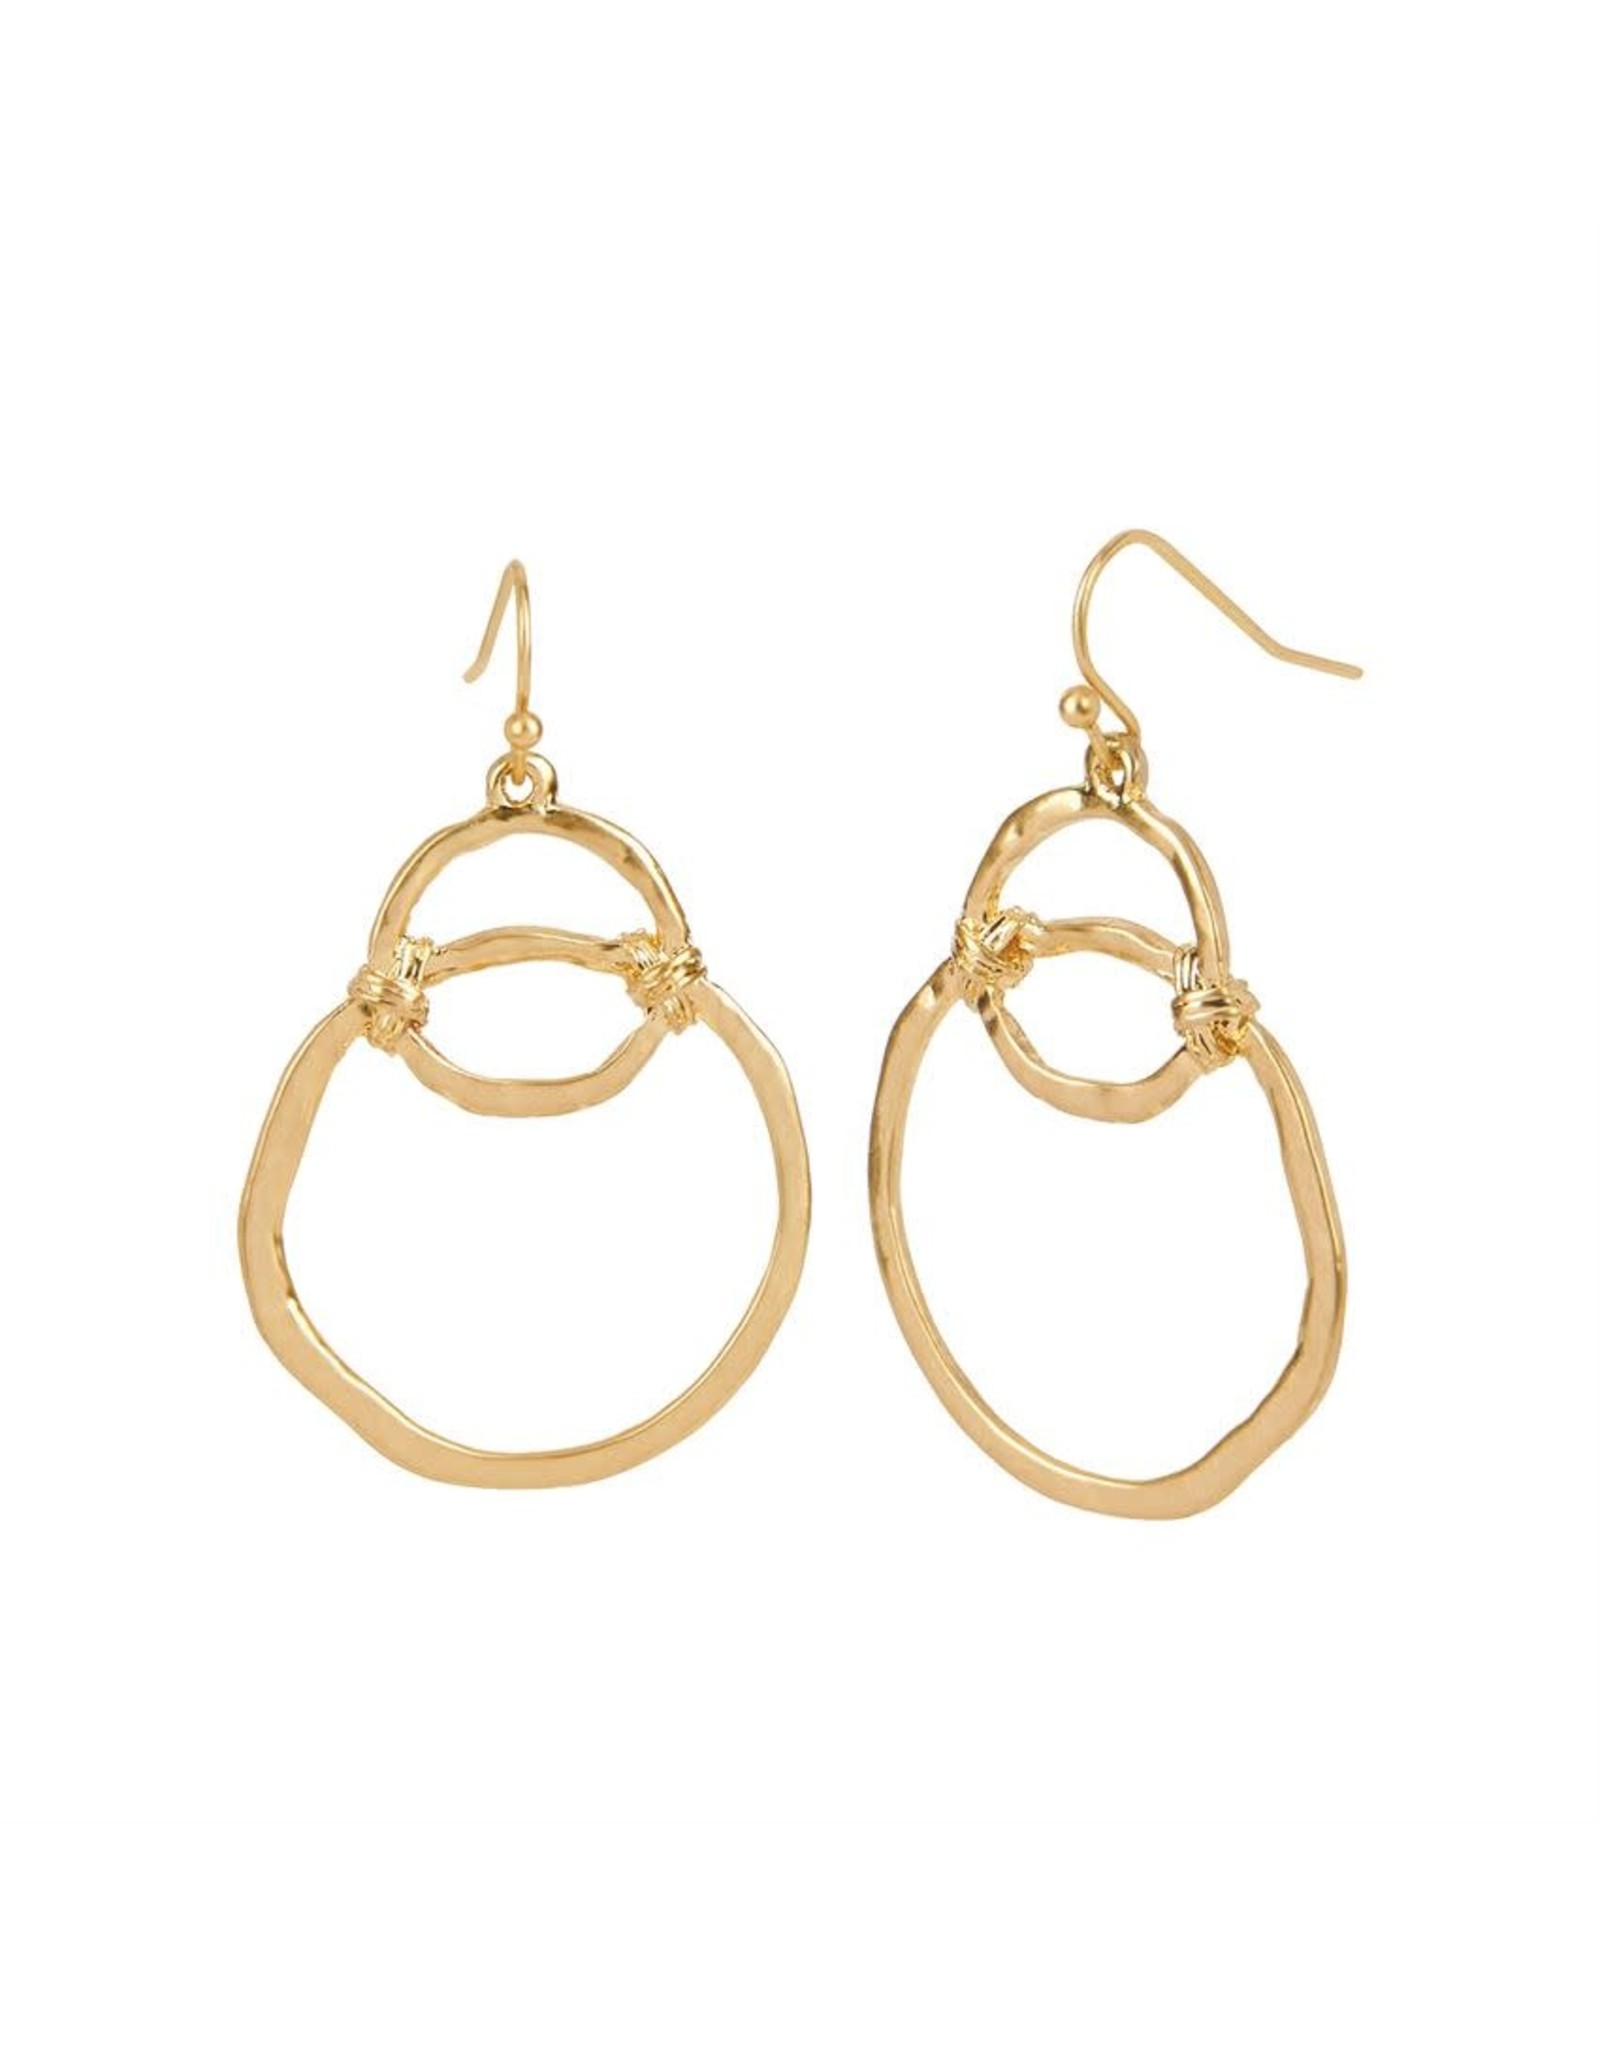 TGB / Good Bead INTERLOCKING HOOPS EARRING GOLD